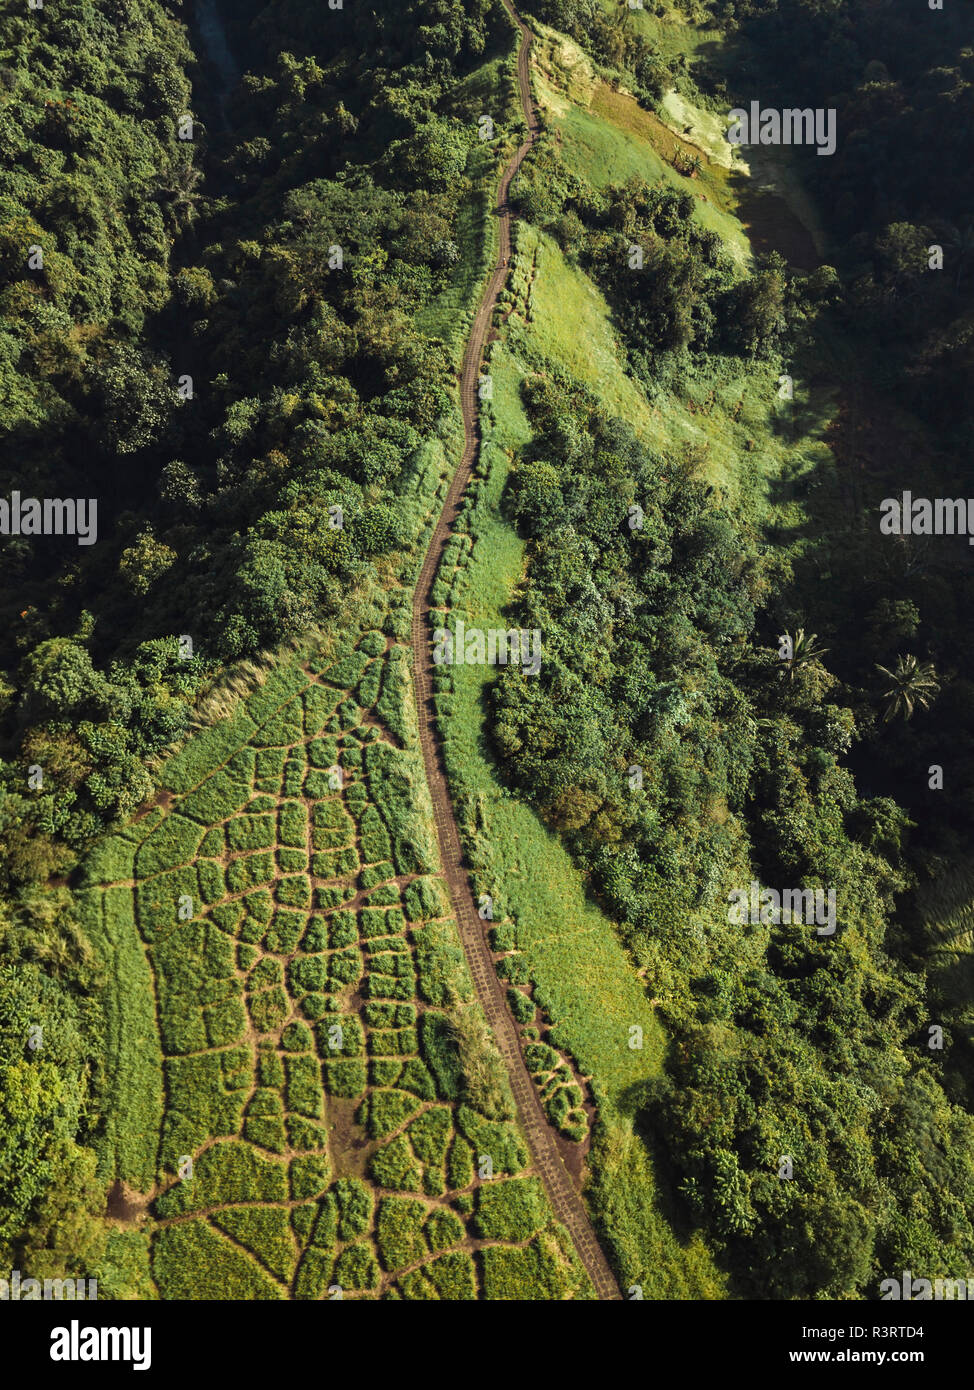 Indonesia, Bali, Ubud, Aerial view of path at hills - Stock Image